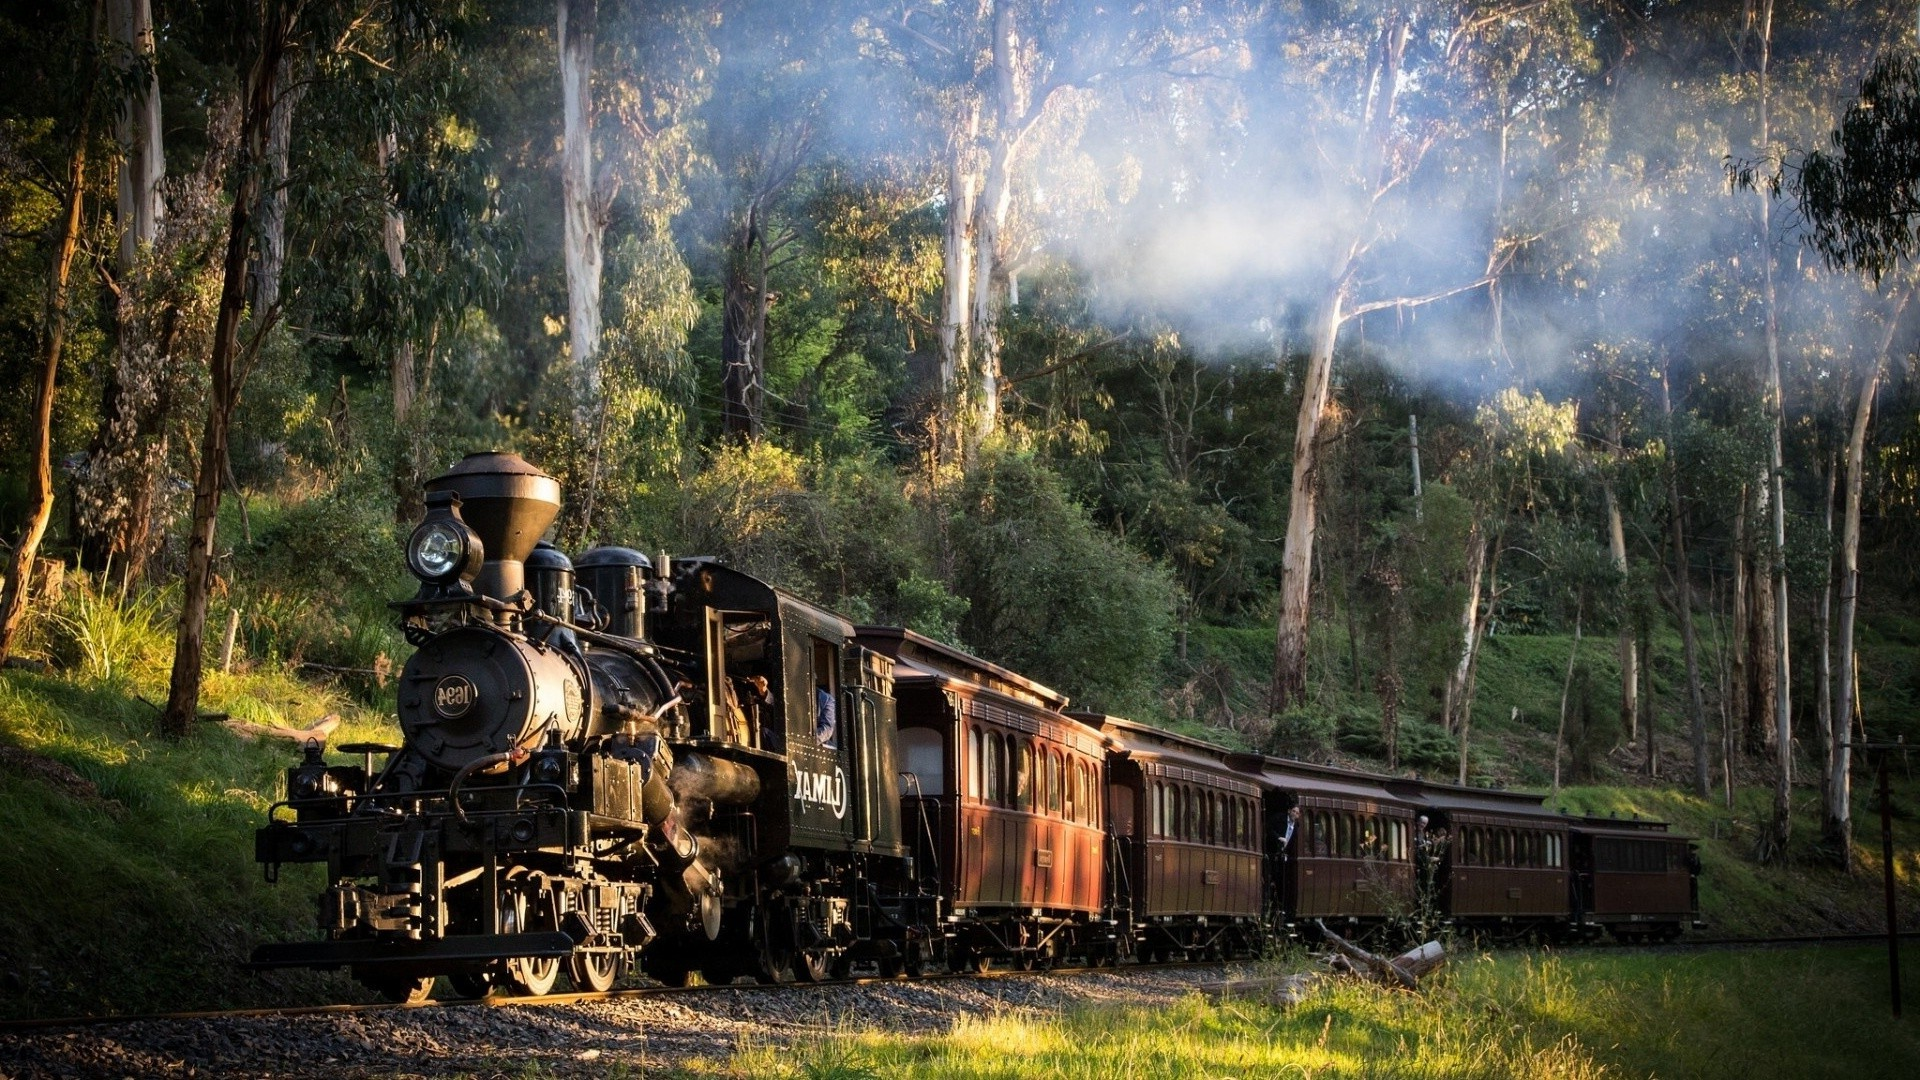 1920x1080 landscape, Train, Railway, Nature, Steam Locomotive, Australia, Trees,  Forest, Smoke, Grass, Sunlight Wallpapers HD / Desktop and Mobile  Backgrounds